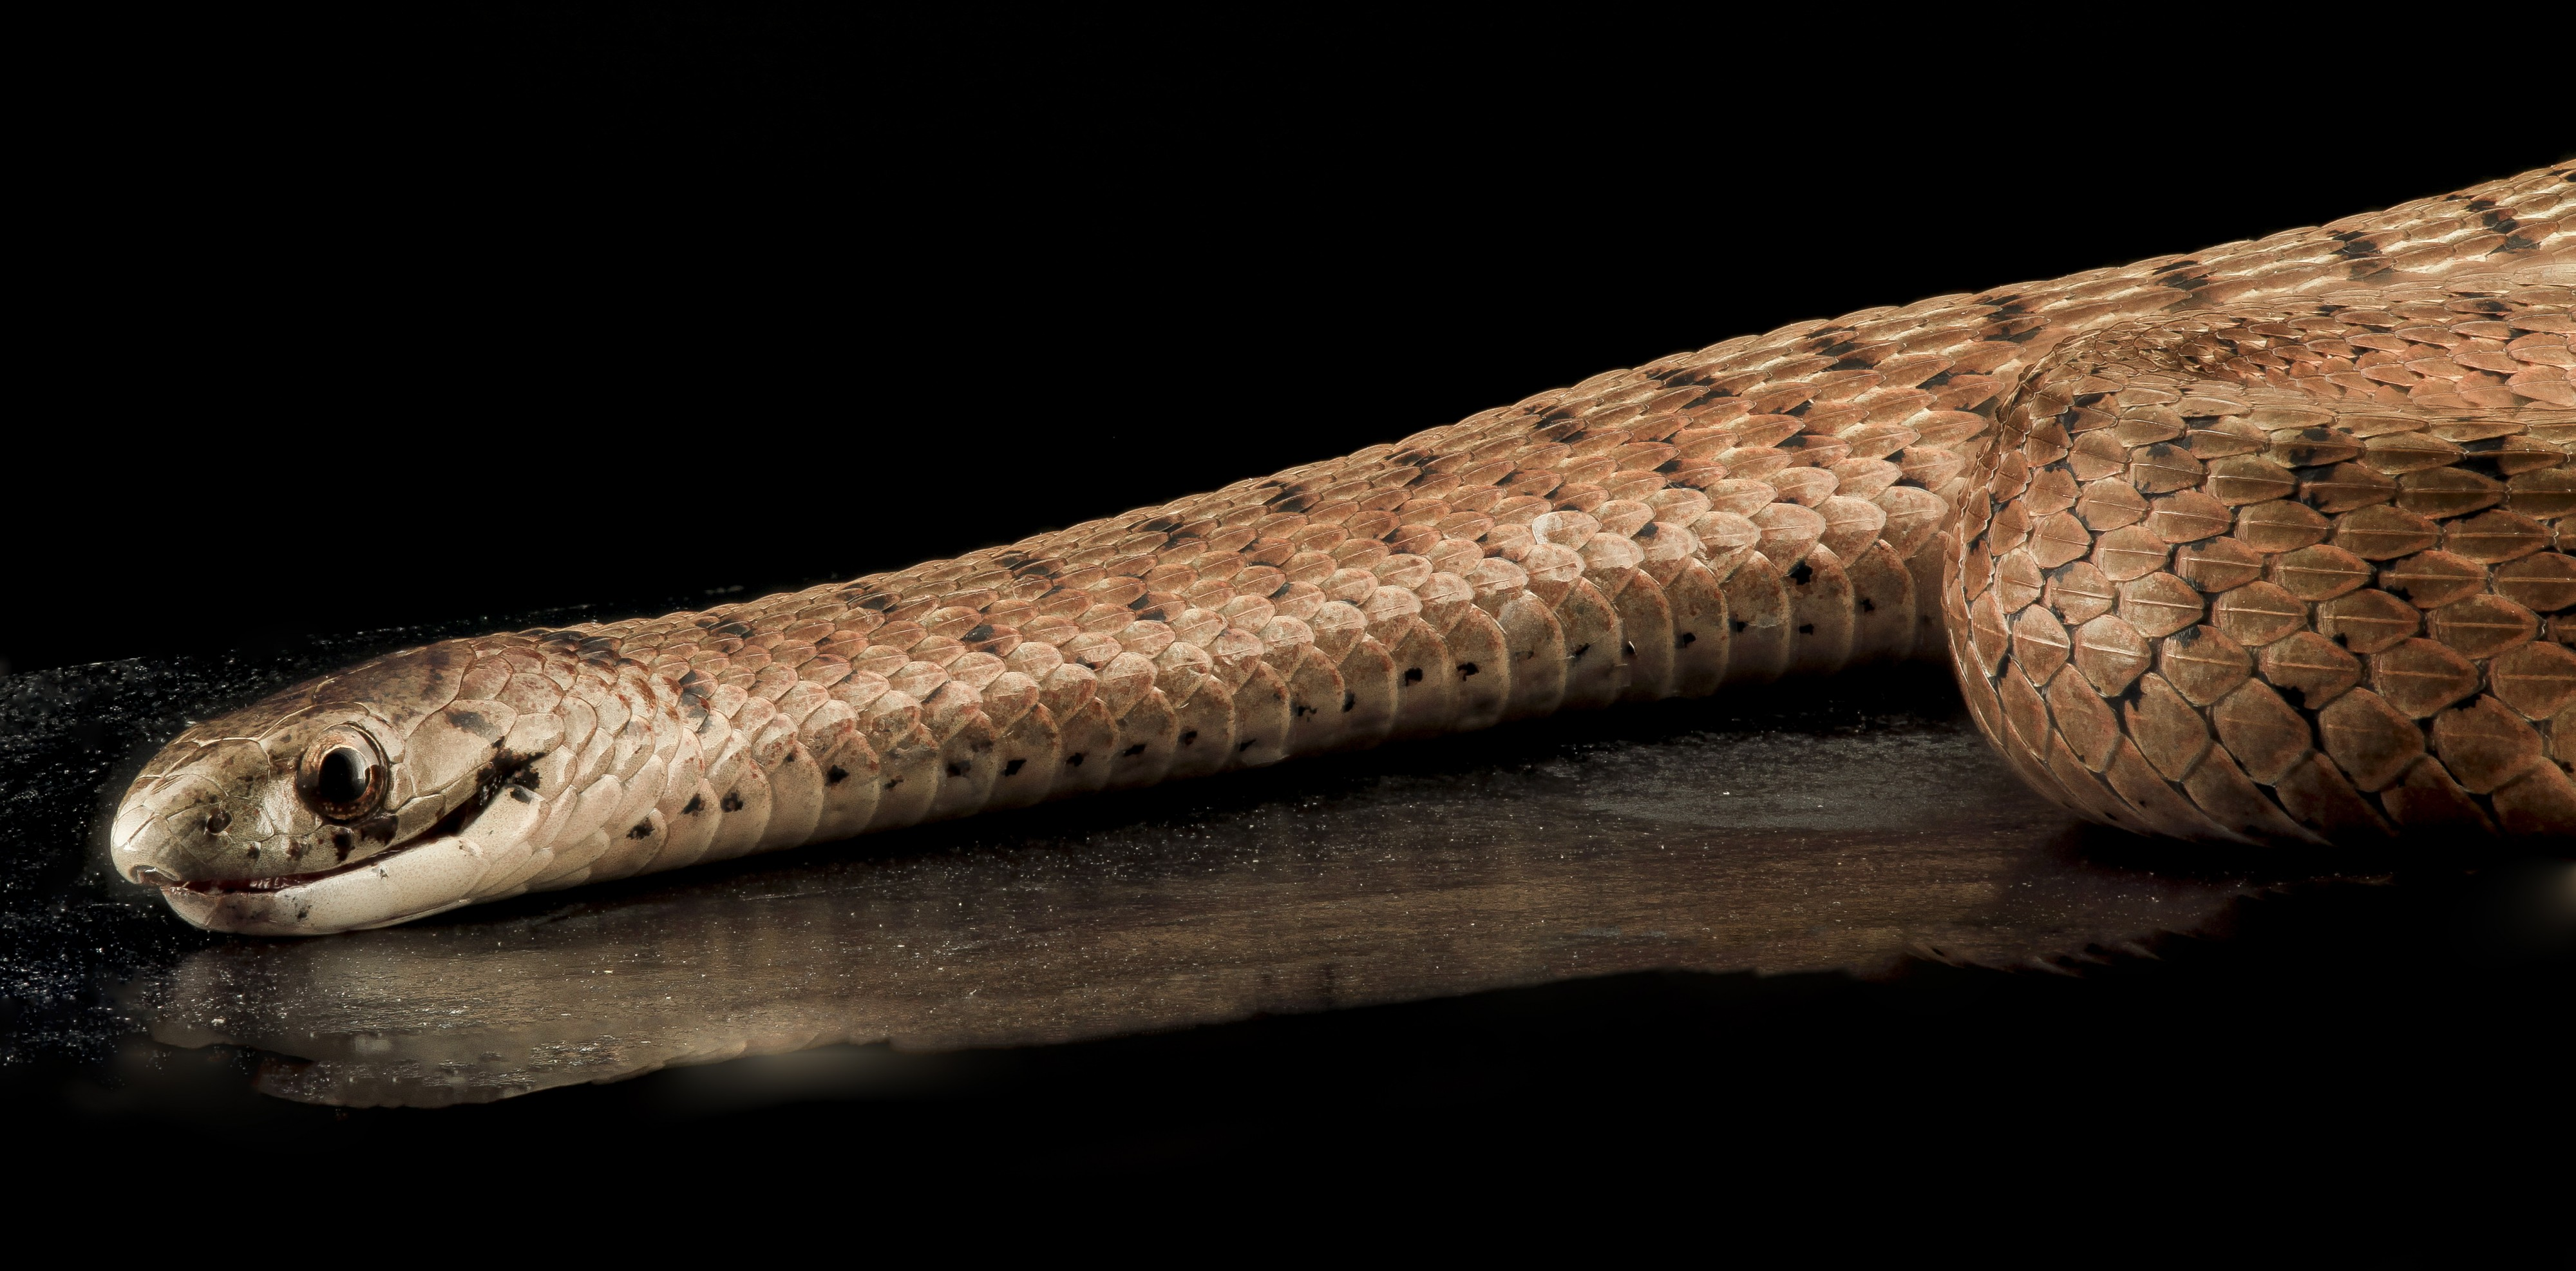 Brown Snake, U, Side, MD, PG County 2013-08-05-17.08.10 ZS PMax (9446047311)